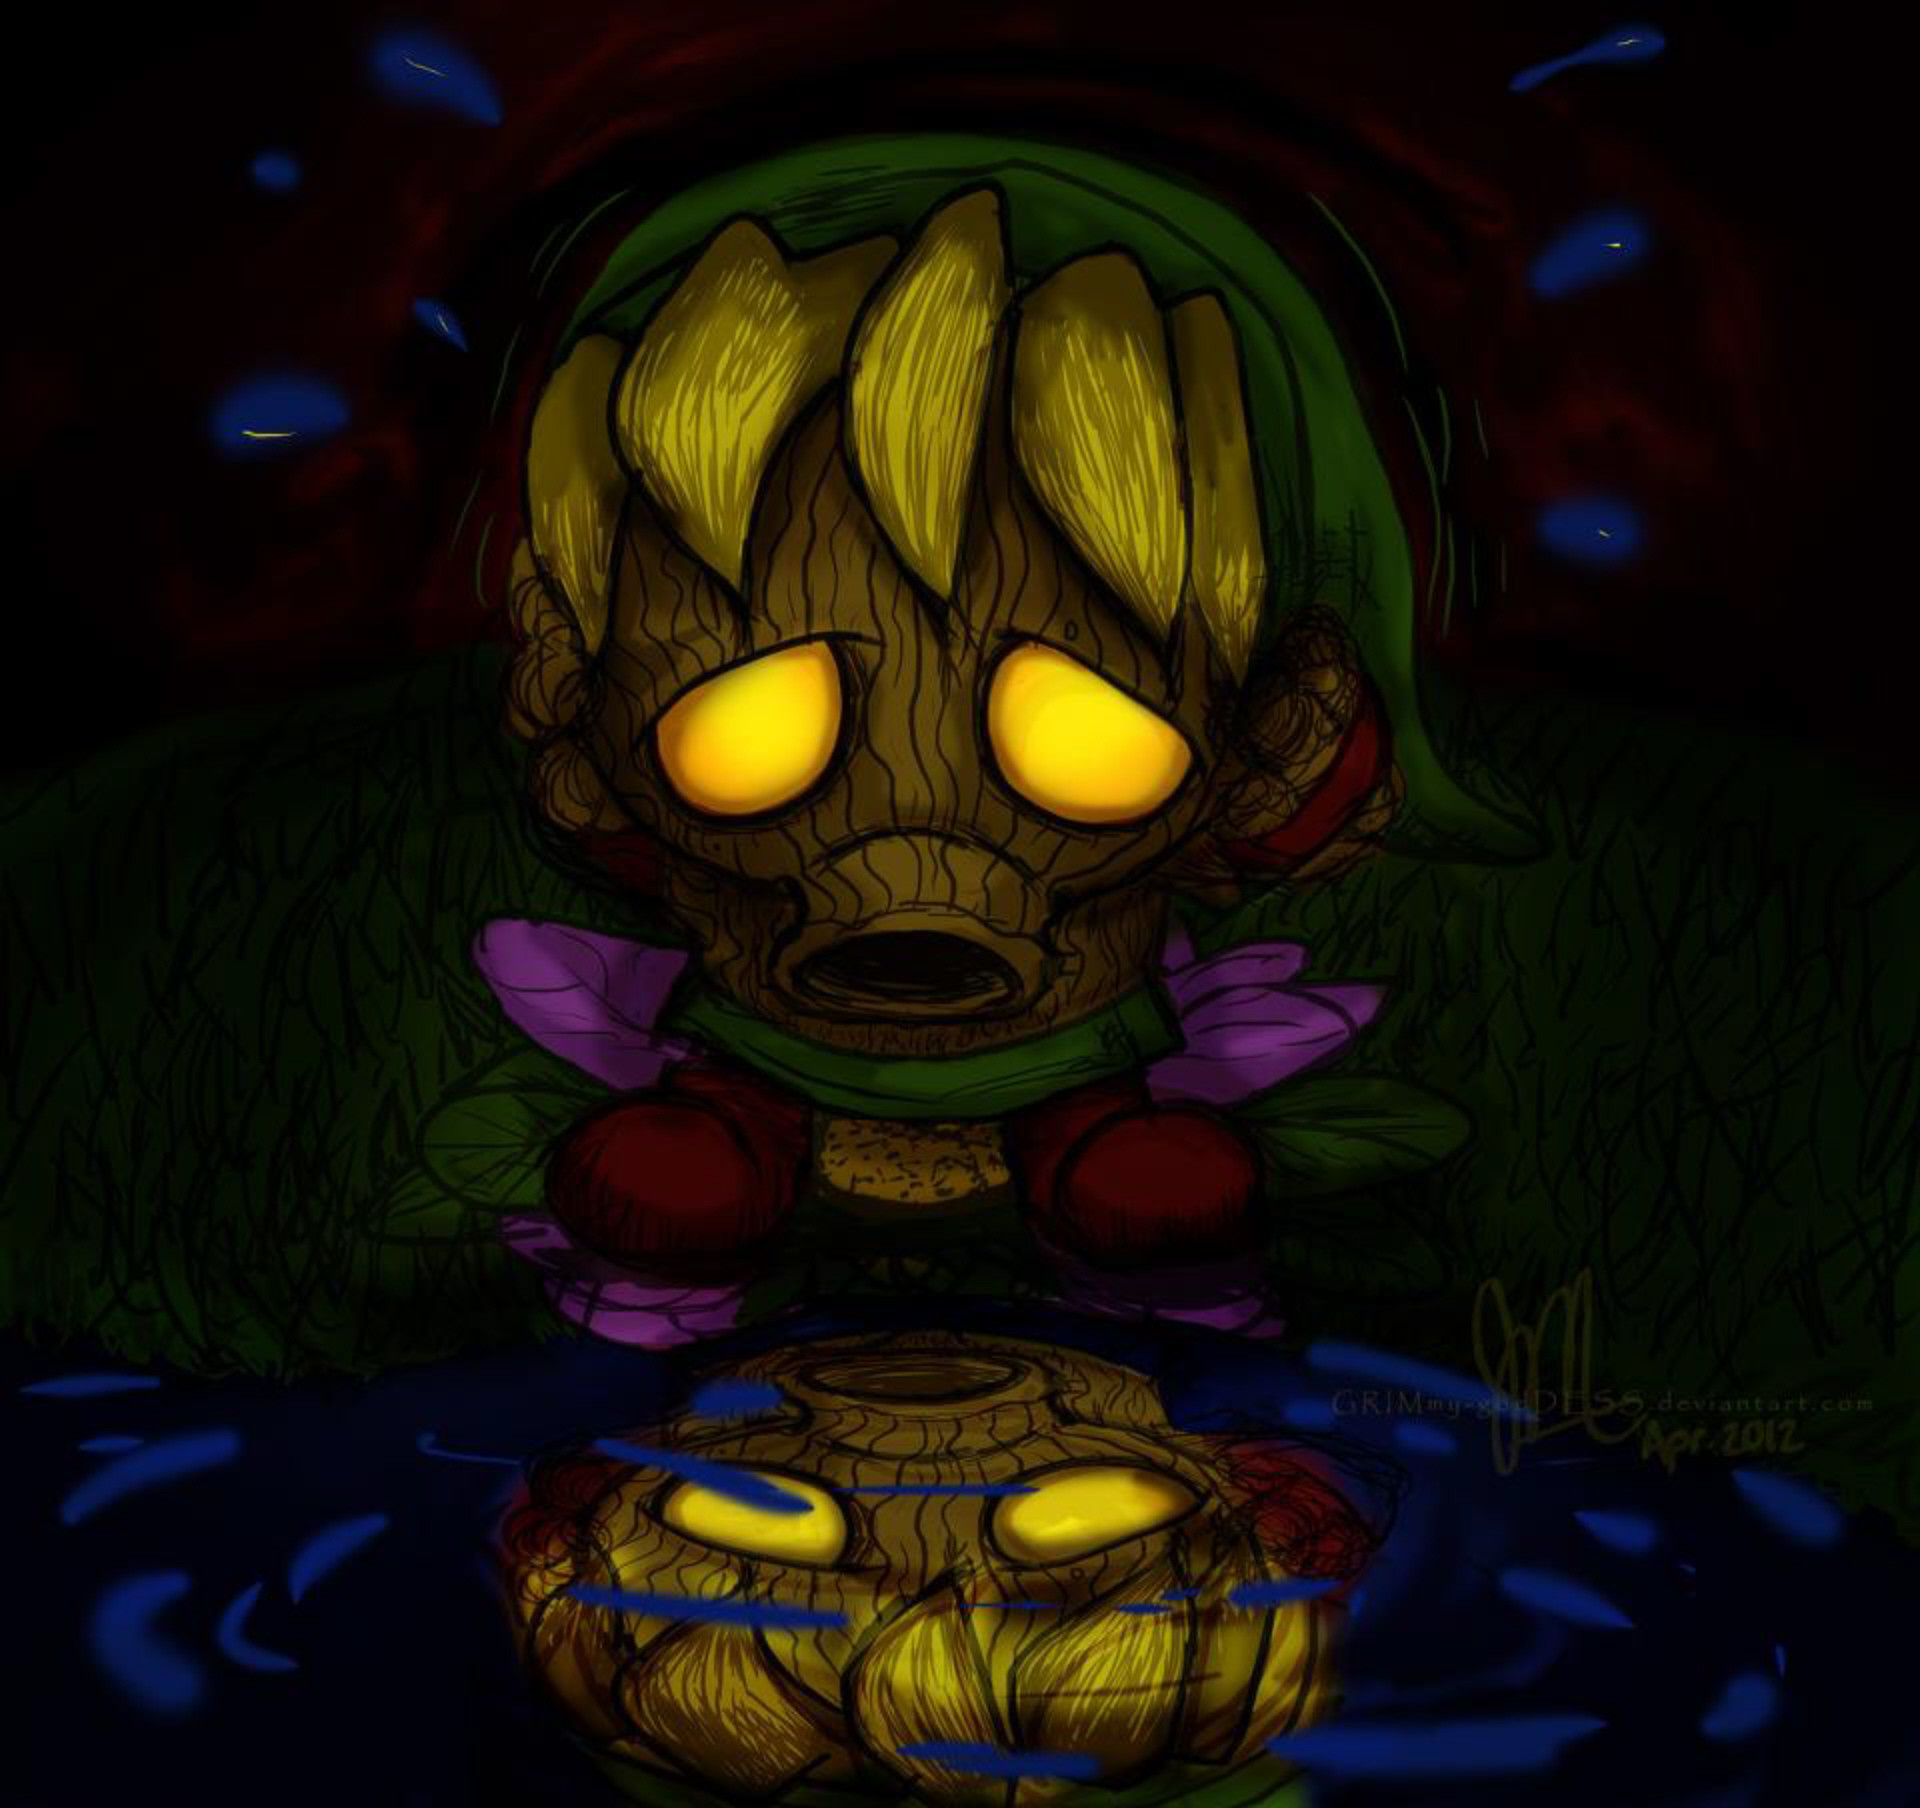 1920x1808 1920x1280 The Legend of Zelda: Majoras Mask, The Legend of Zelda, Video  games,